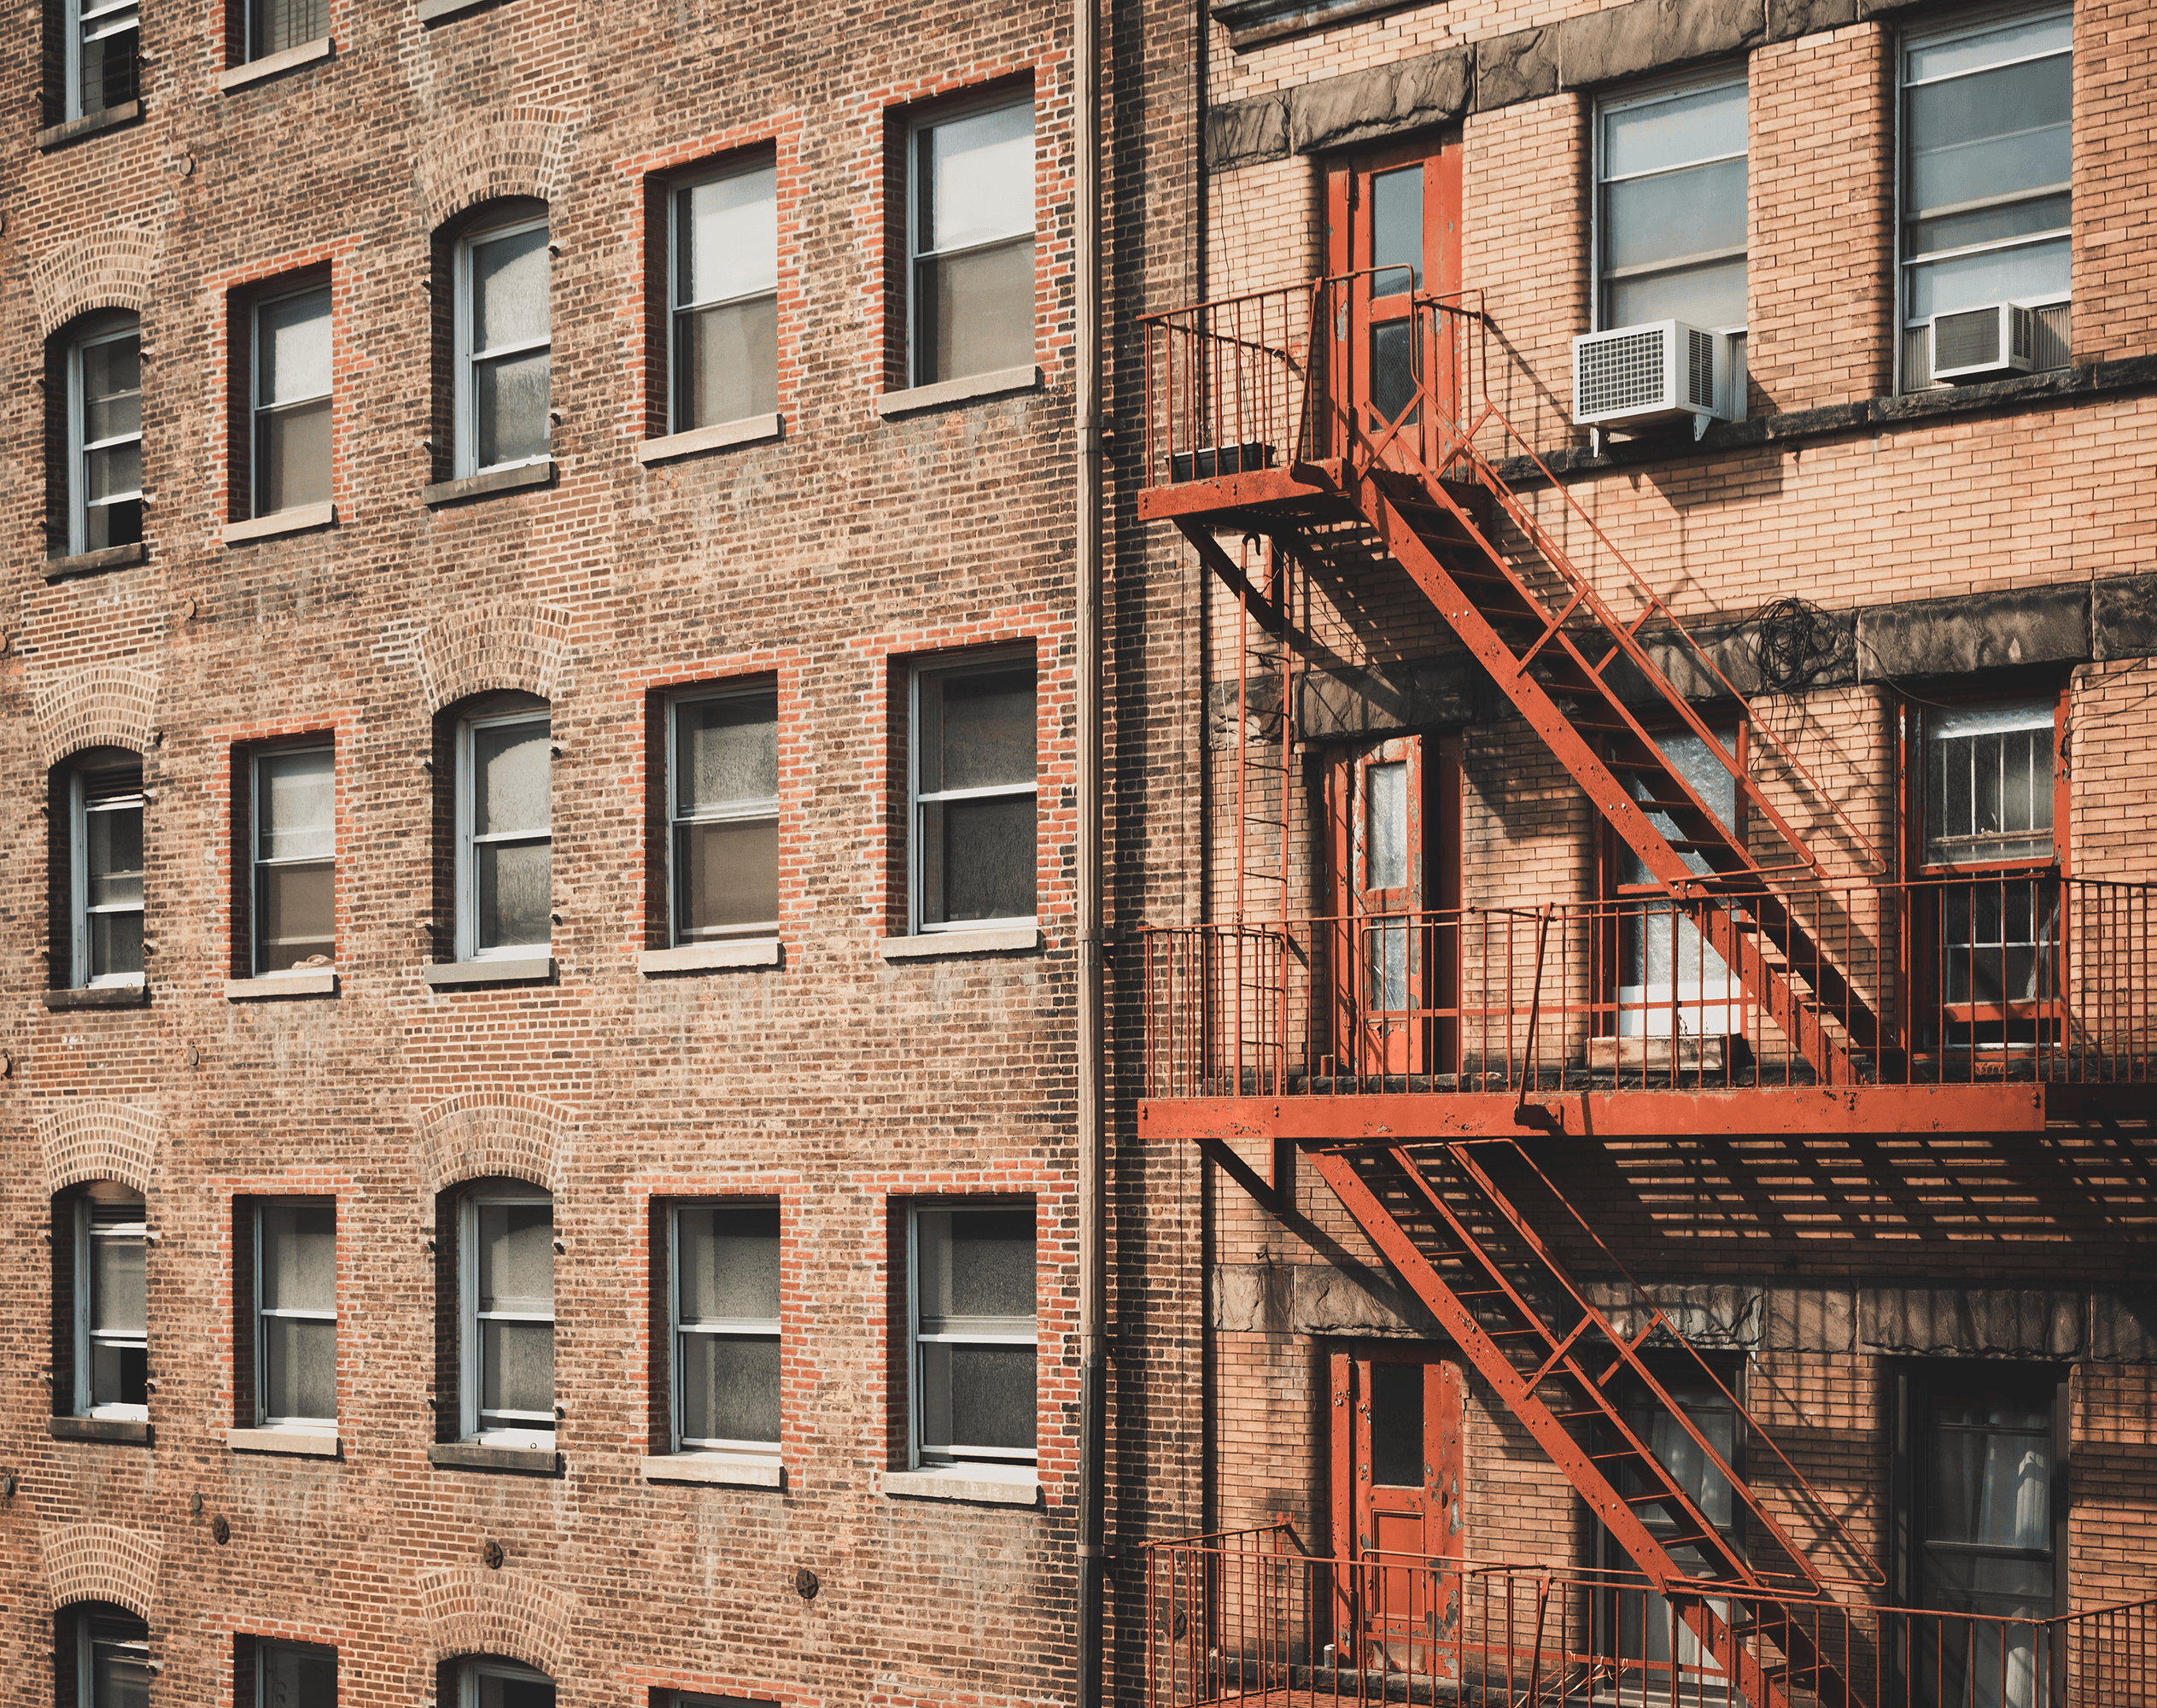 Side of urban building with red fire escape